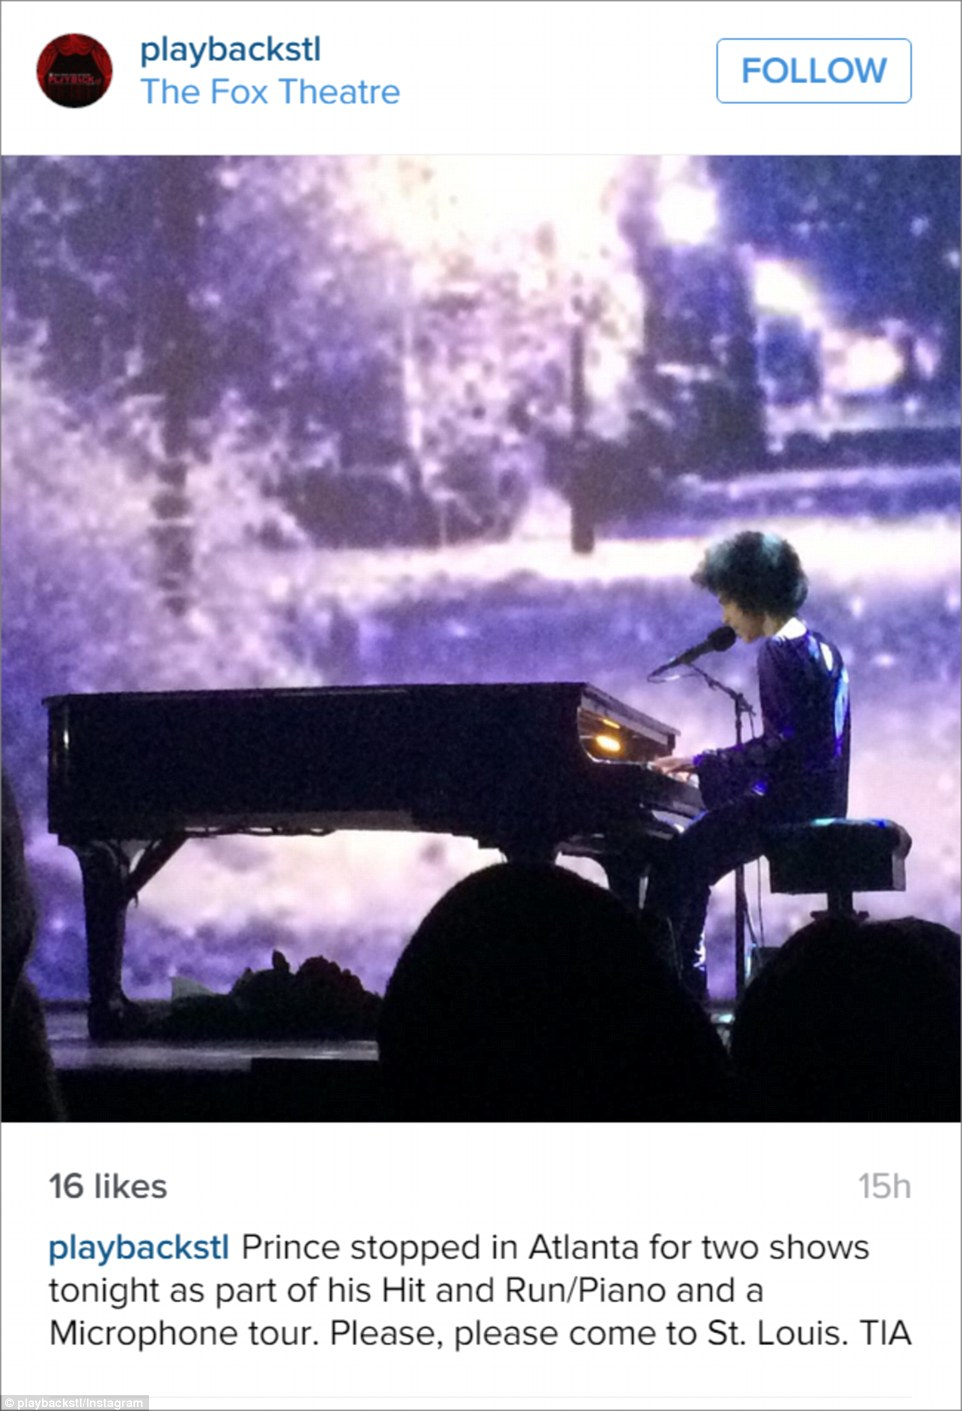 3339712F00000578-3552300-The_Purple_Rain_hitmaker_had_performed_at_The_Fox_Theatre_in_Atl-a-79_1461260421807